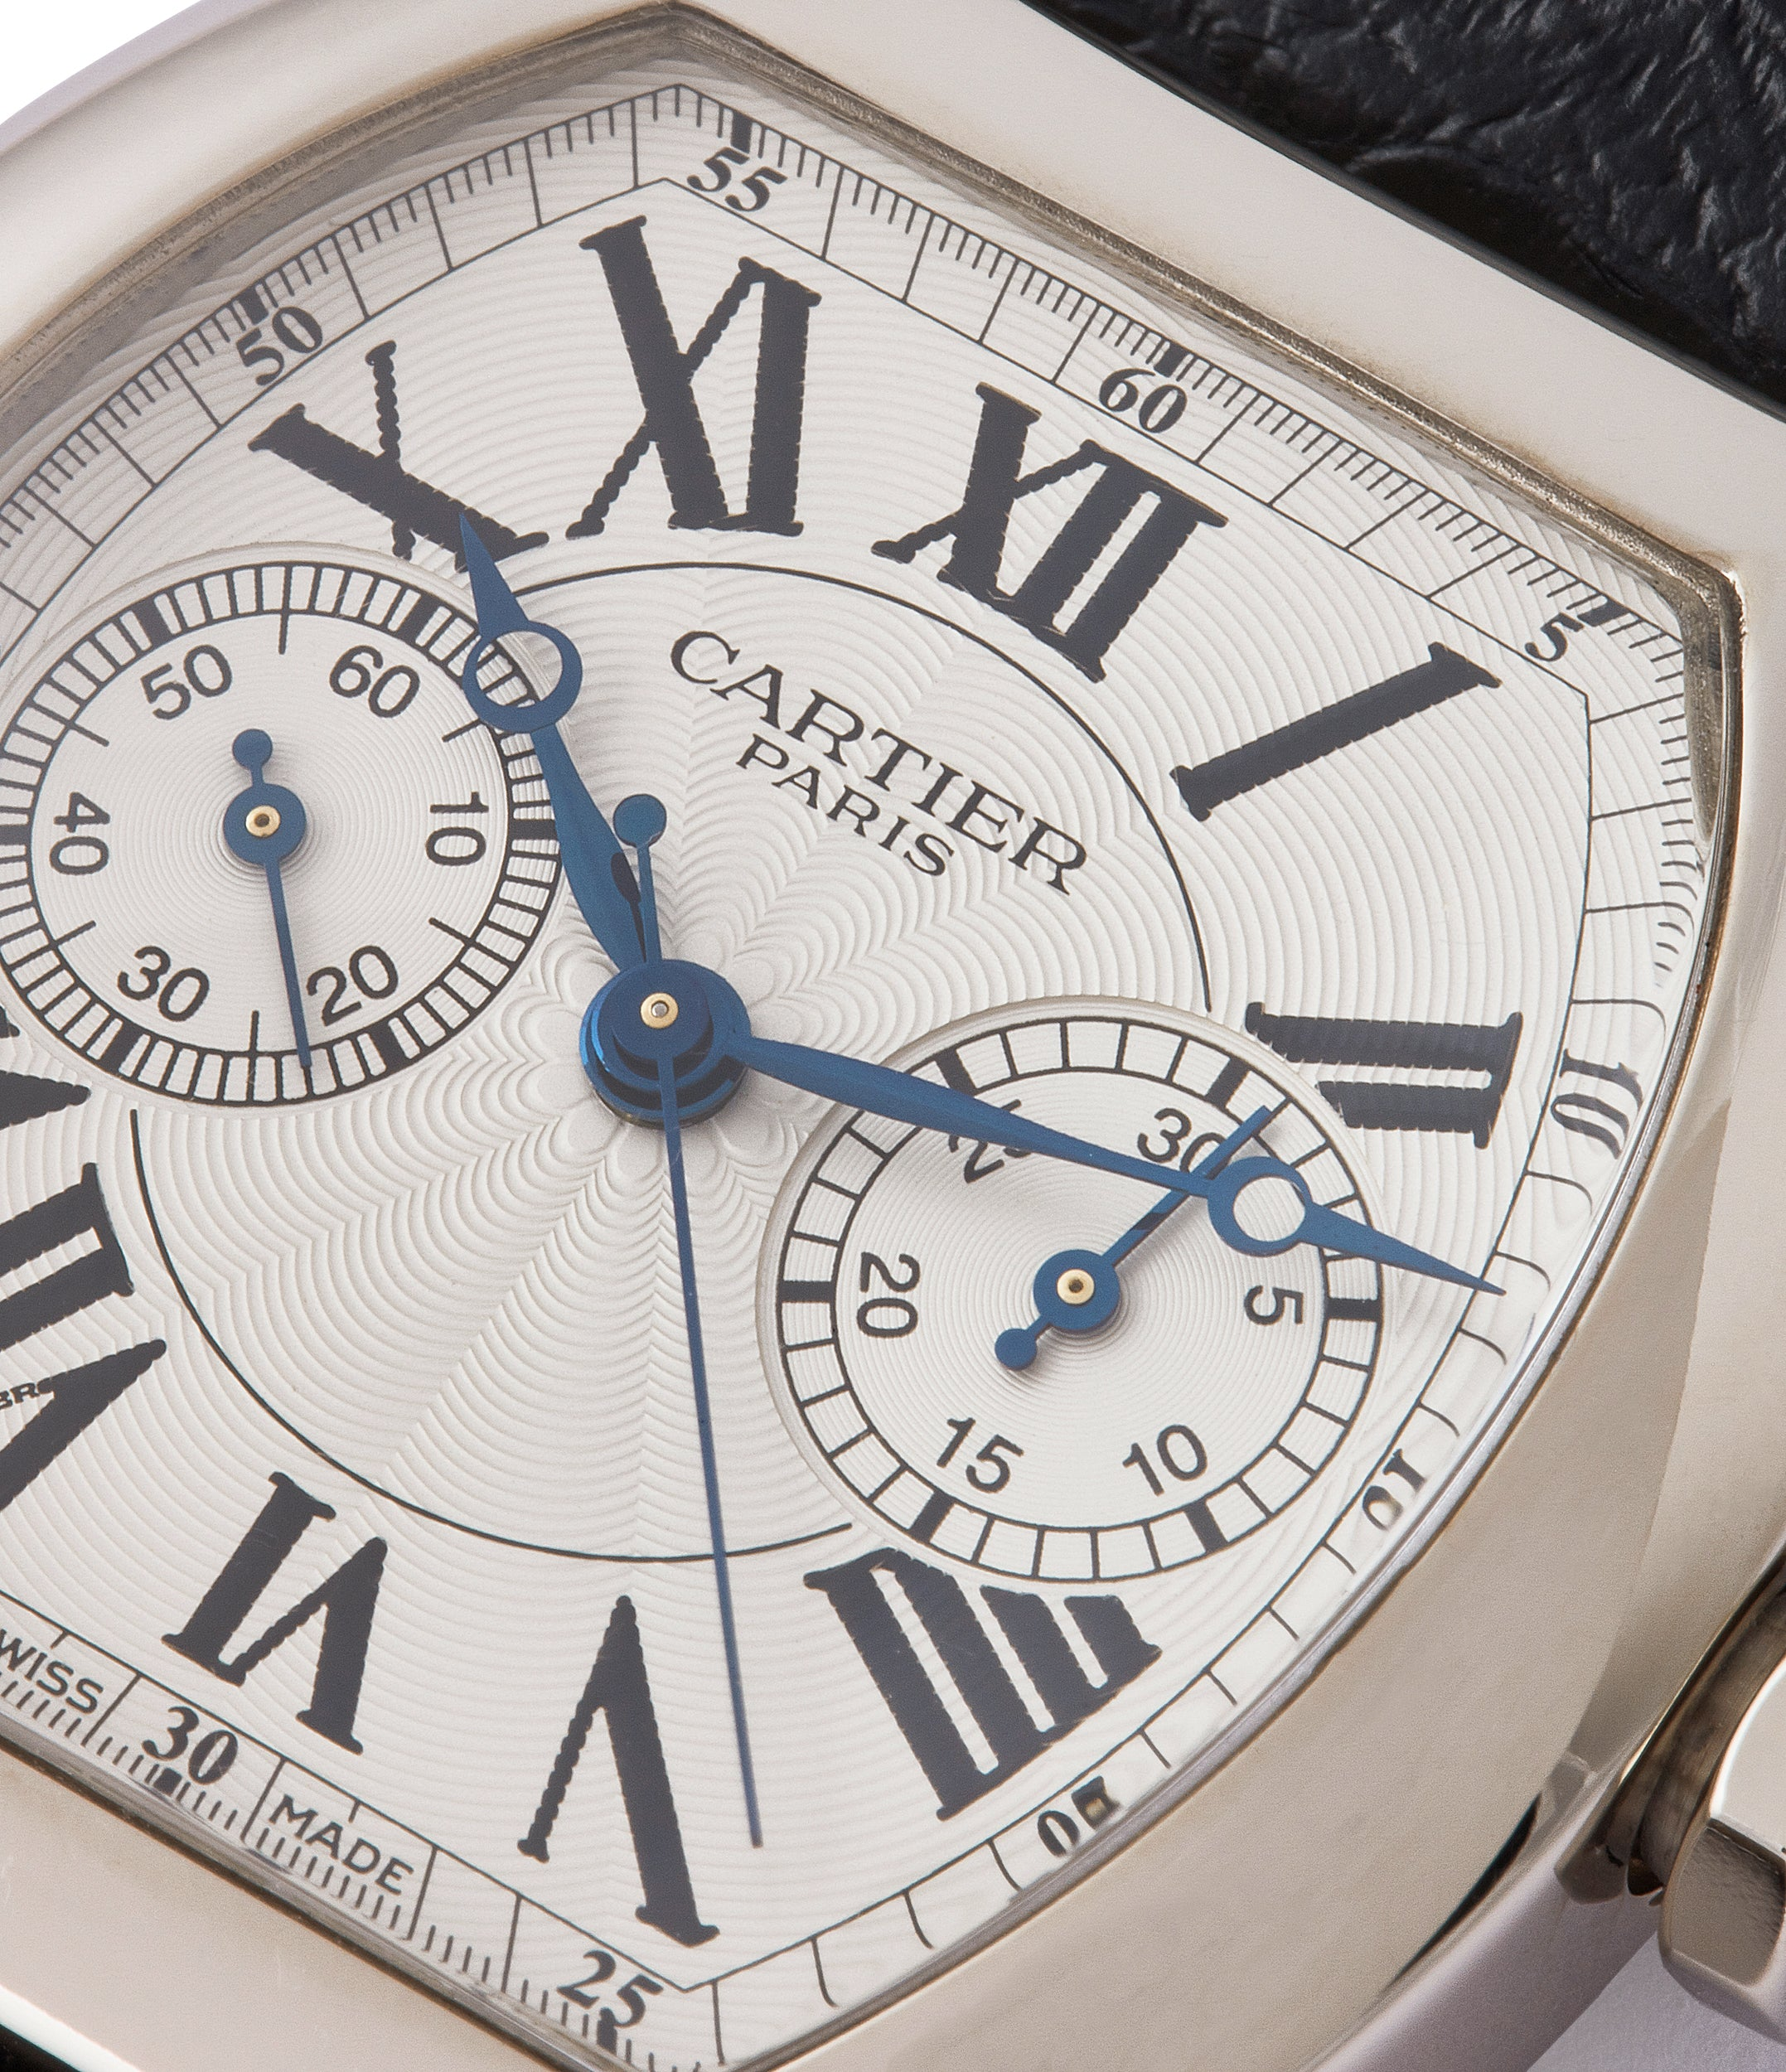 for sale Cartier Monopusher Monopoussoir Ref. 2714 white gold rare dress watch for sale online at A Collected Man London UK specialist of rare watches